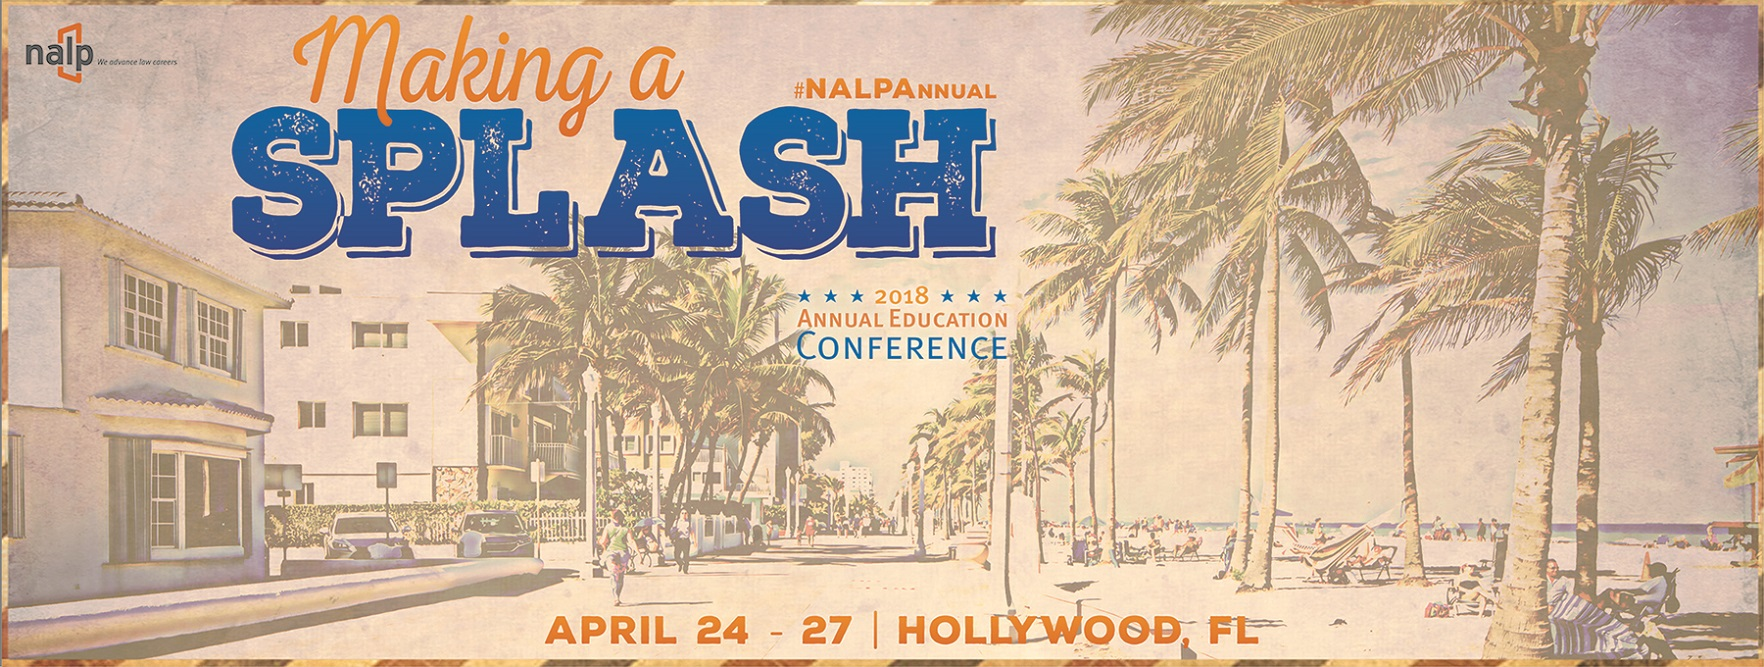 2018 NALP Annual Education Conference